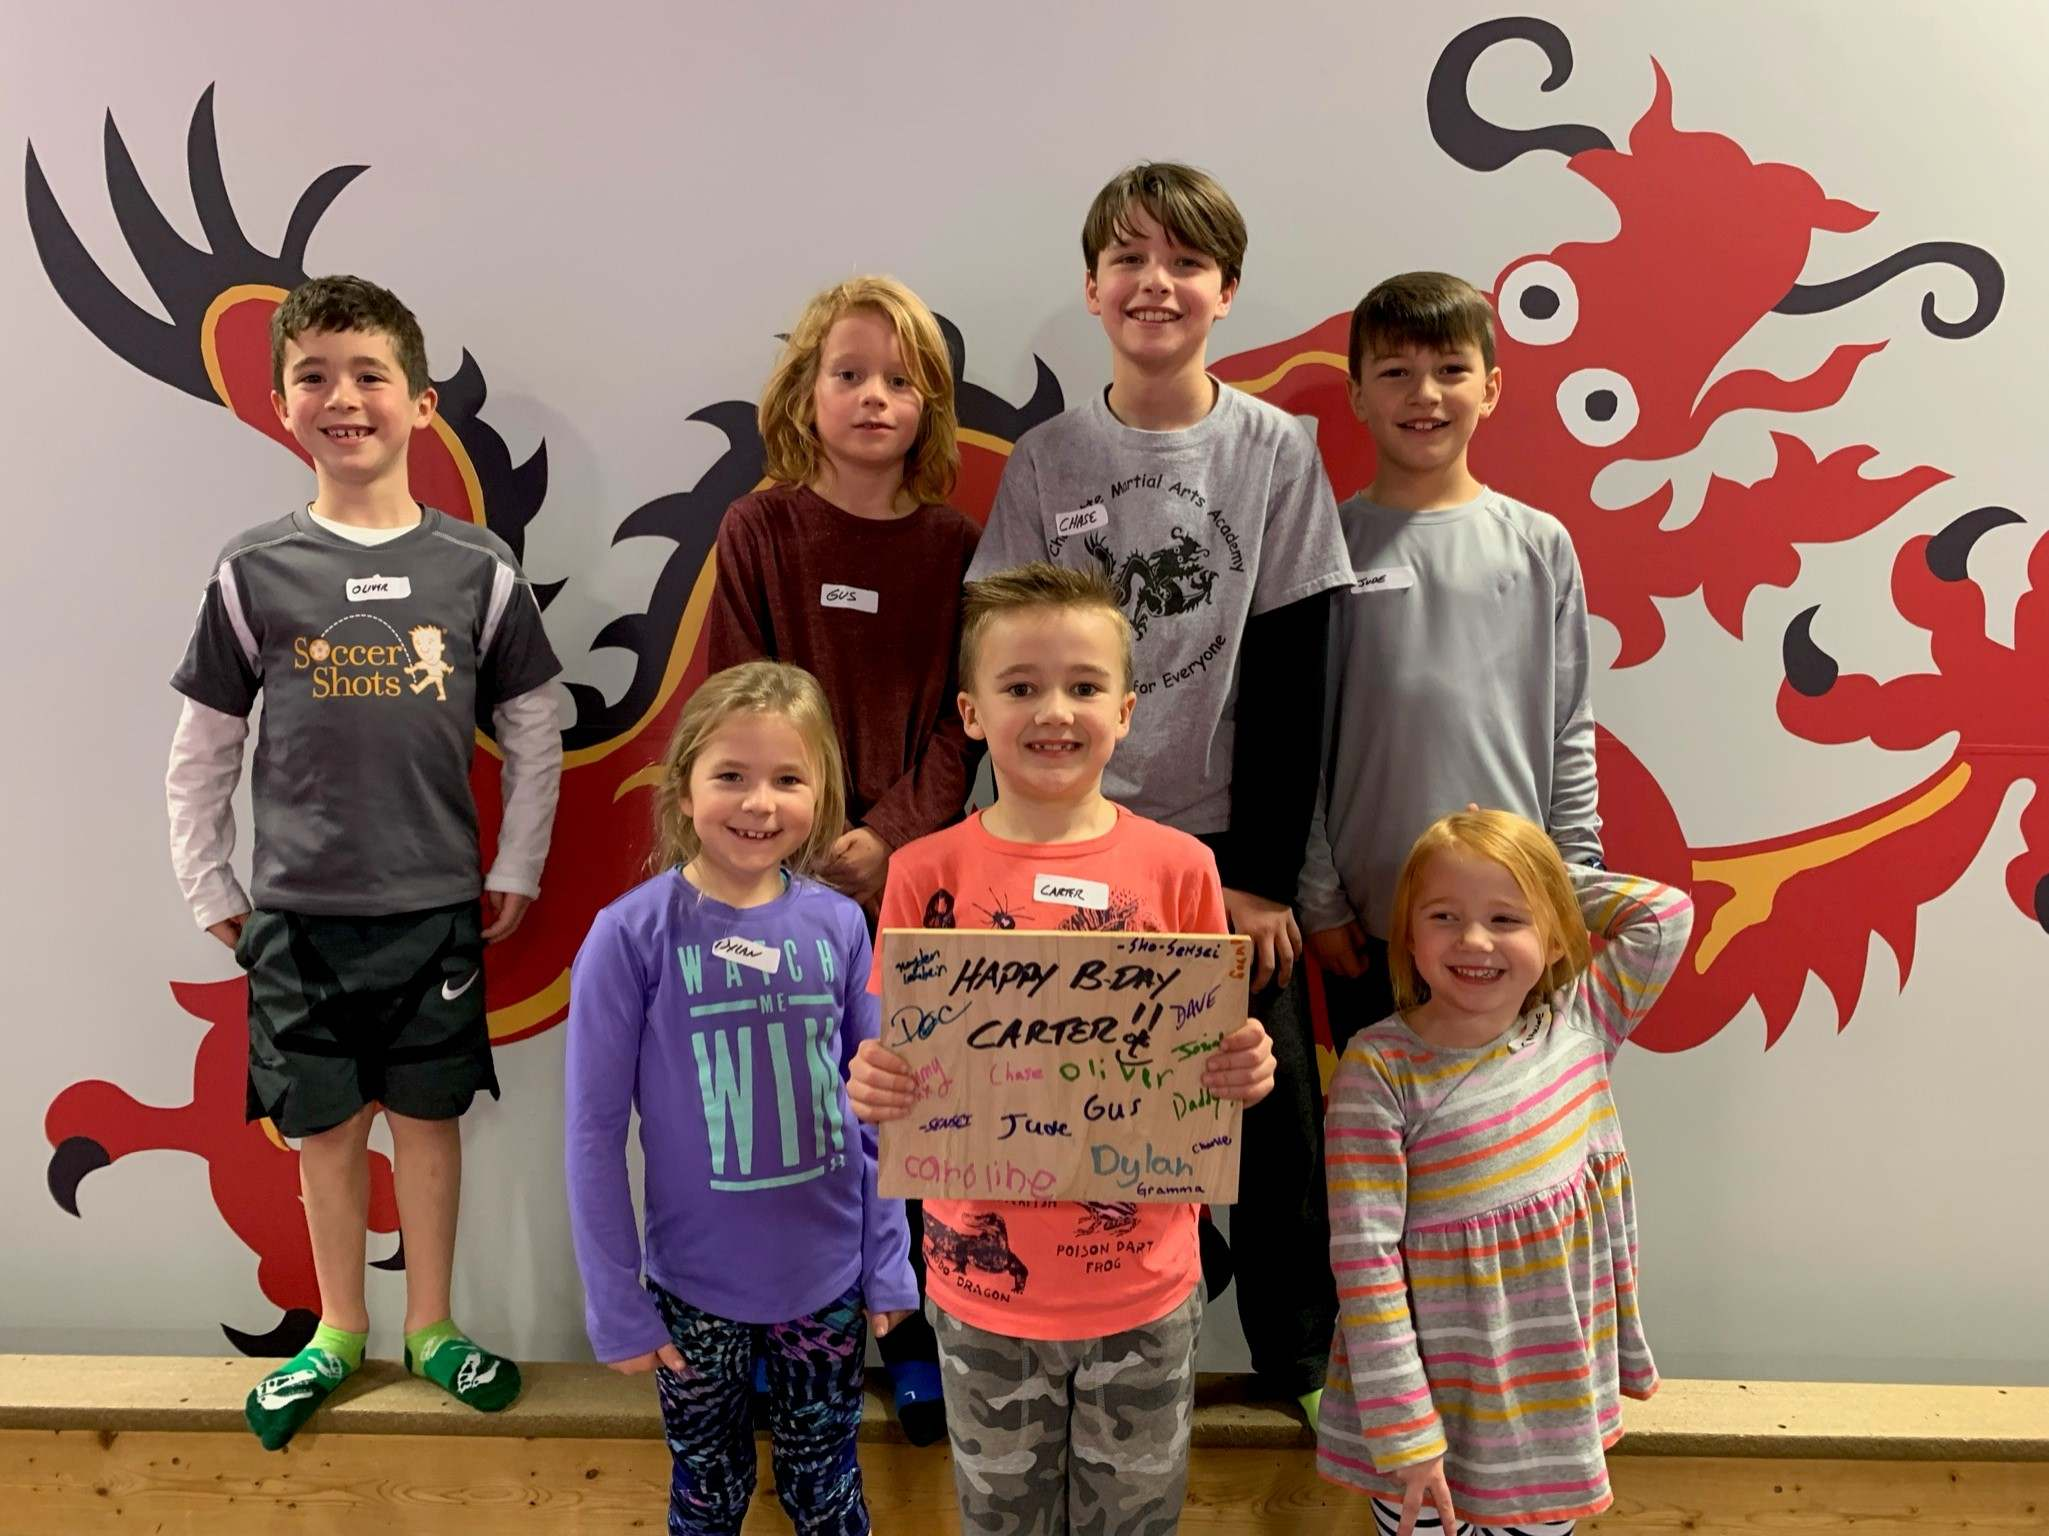 Happy Bday Carter, Charlotte Martial Arts Academy Charlotte NC